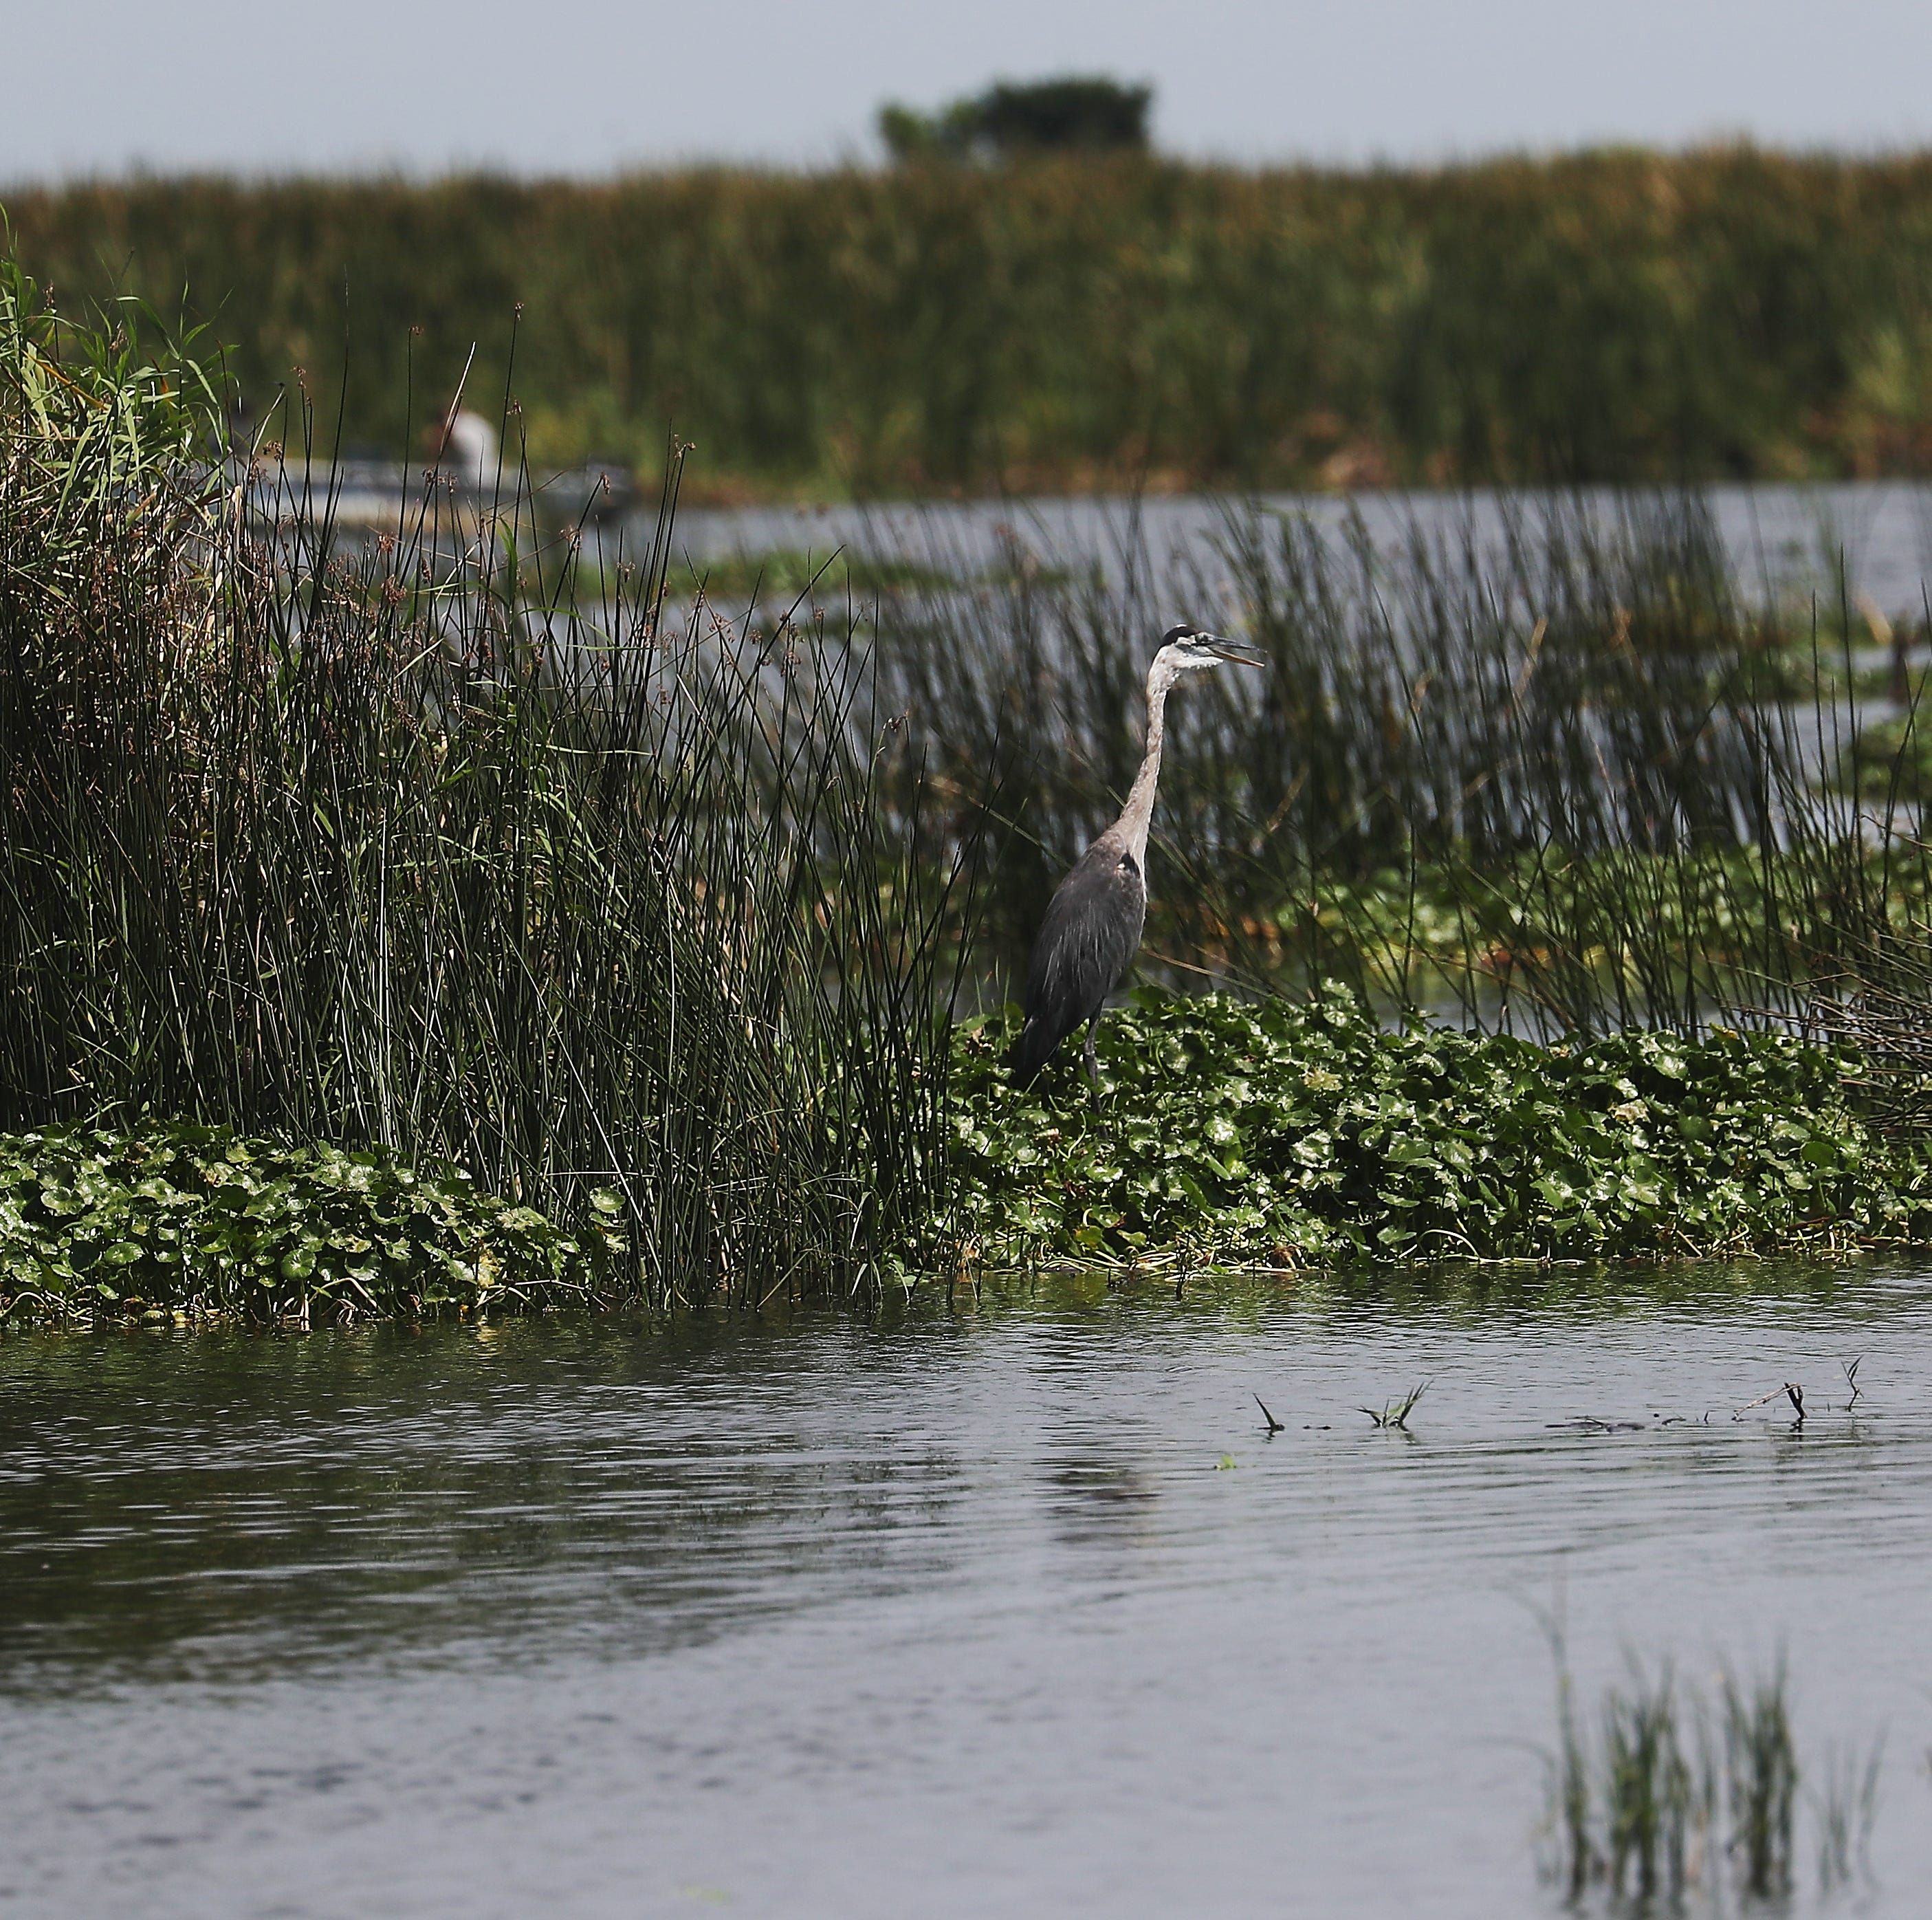 With Trump visit on the horizon, here are five things you should know about Lake Okeechobee